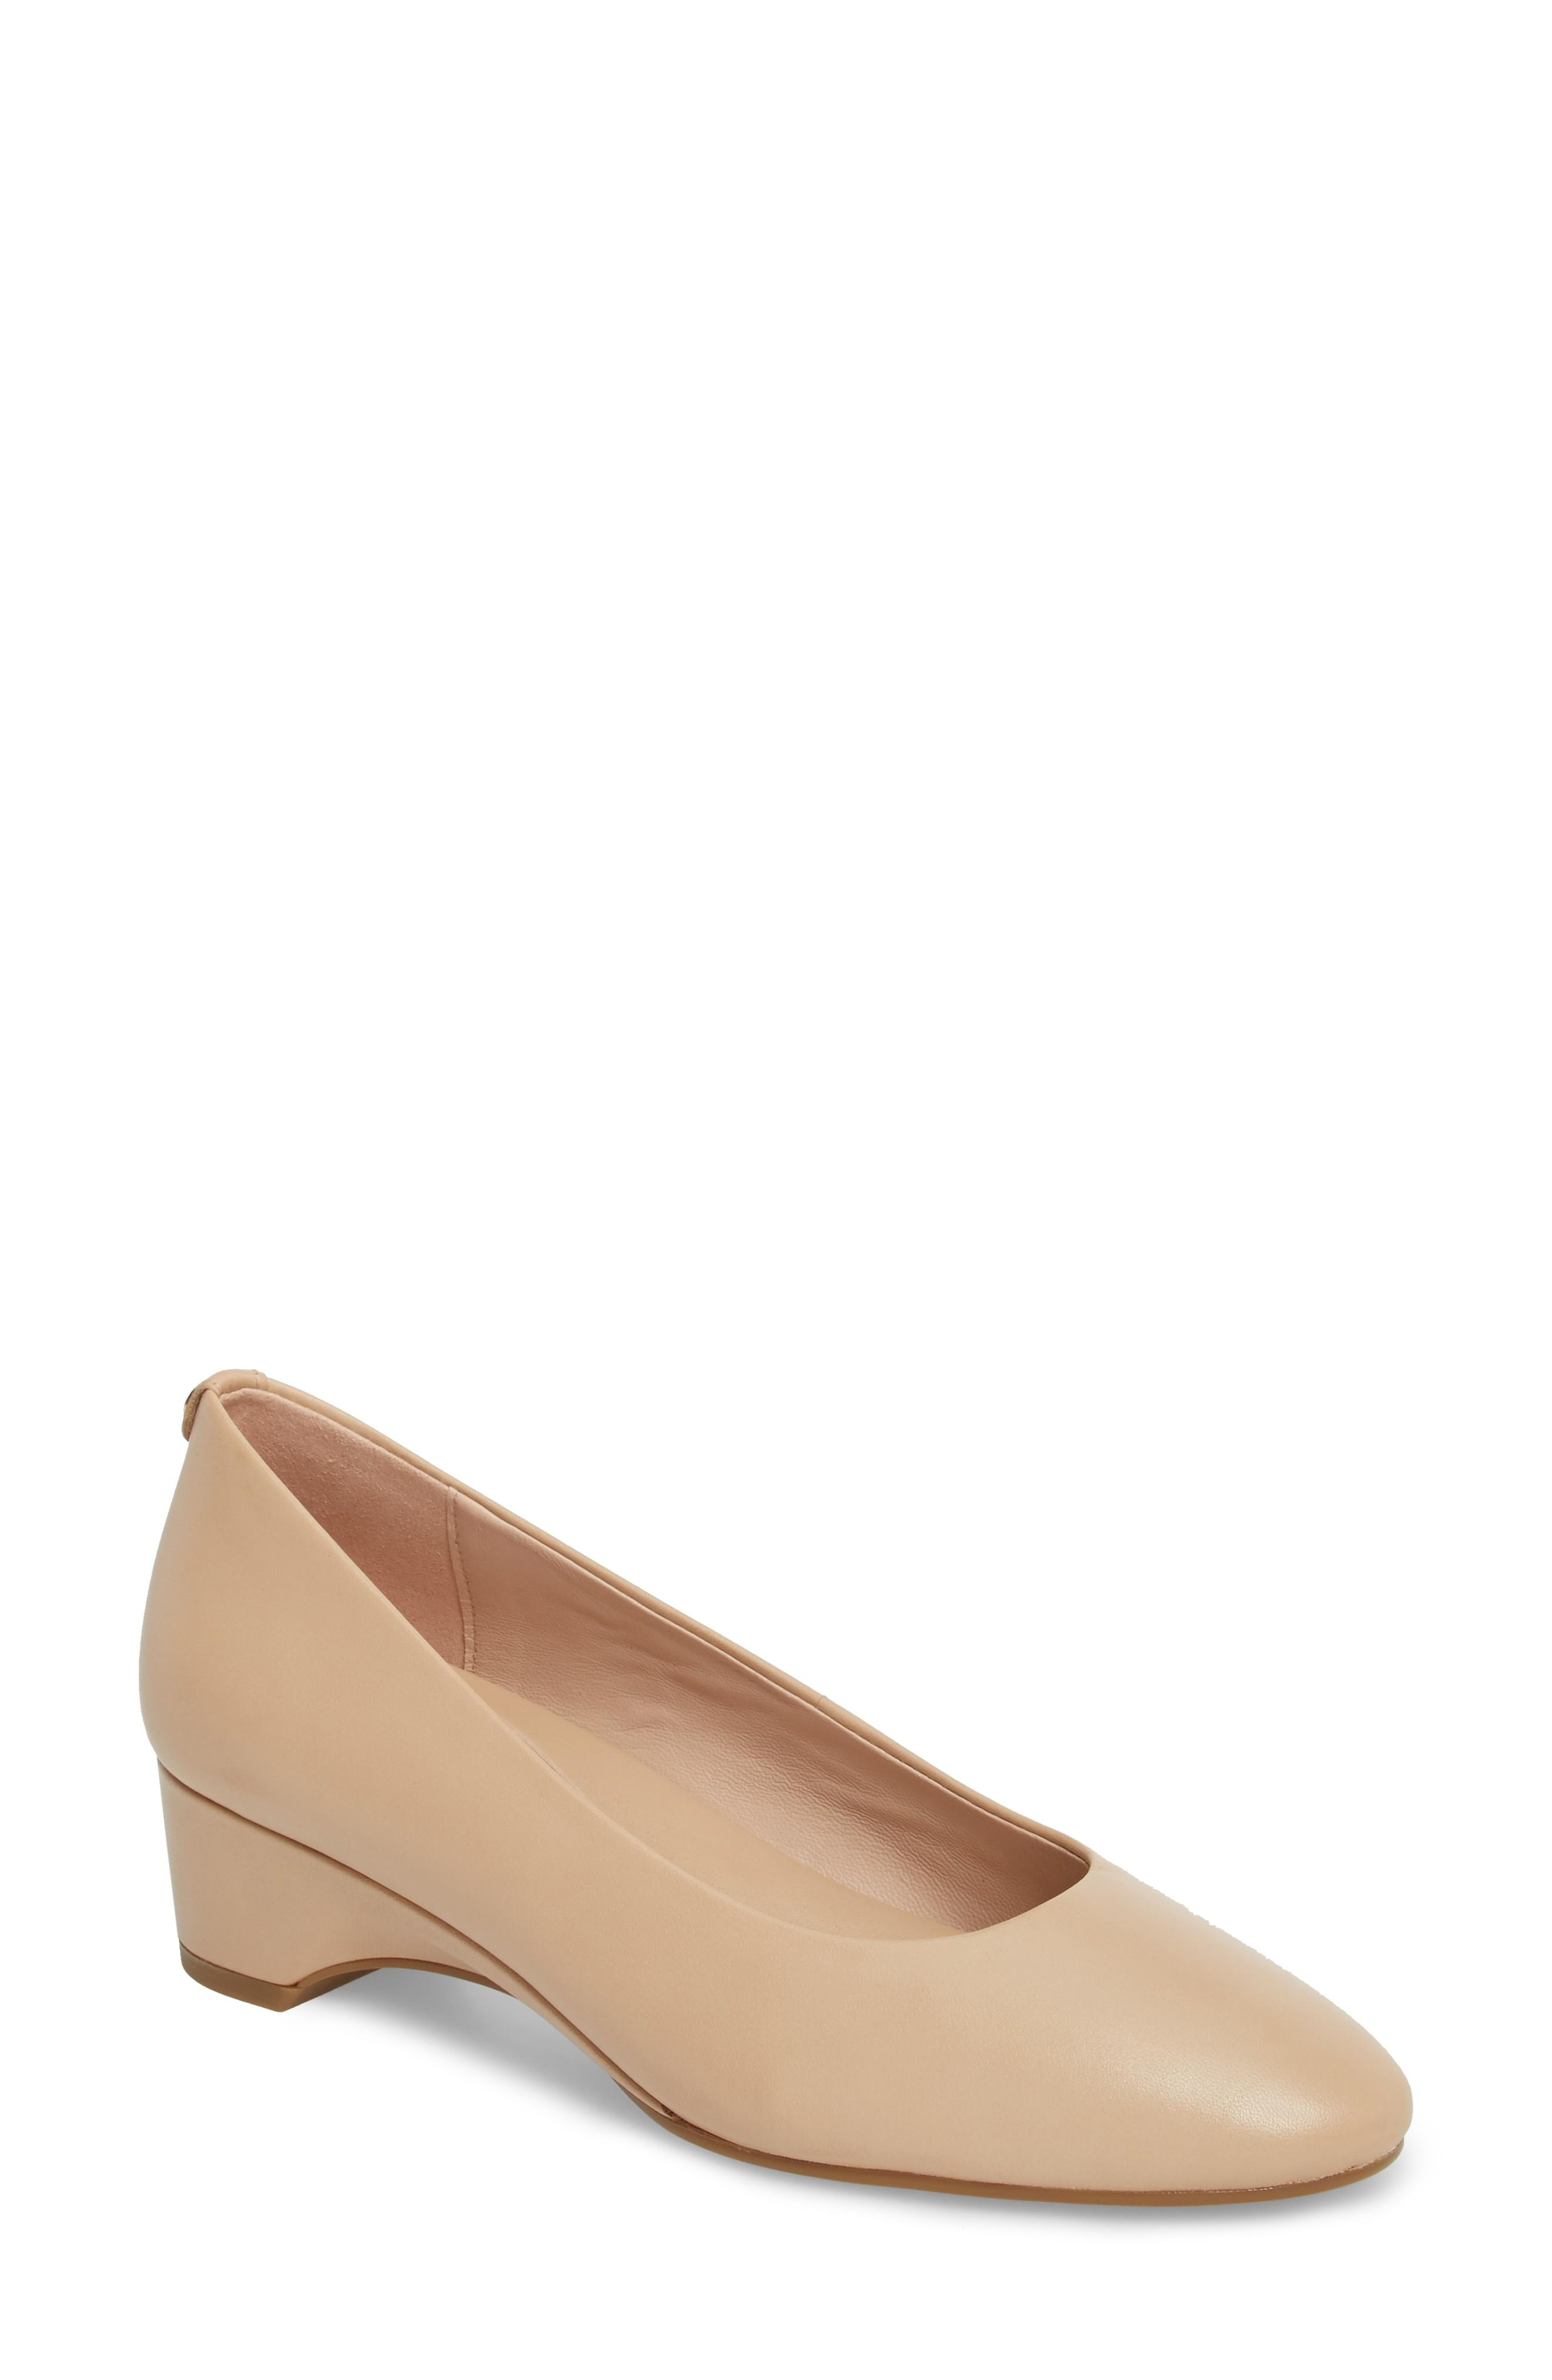 c5d8cd69de39 Taryn Rose Babs Soft Patent Leather Demi Wedge Fort Pump In